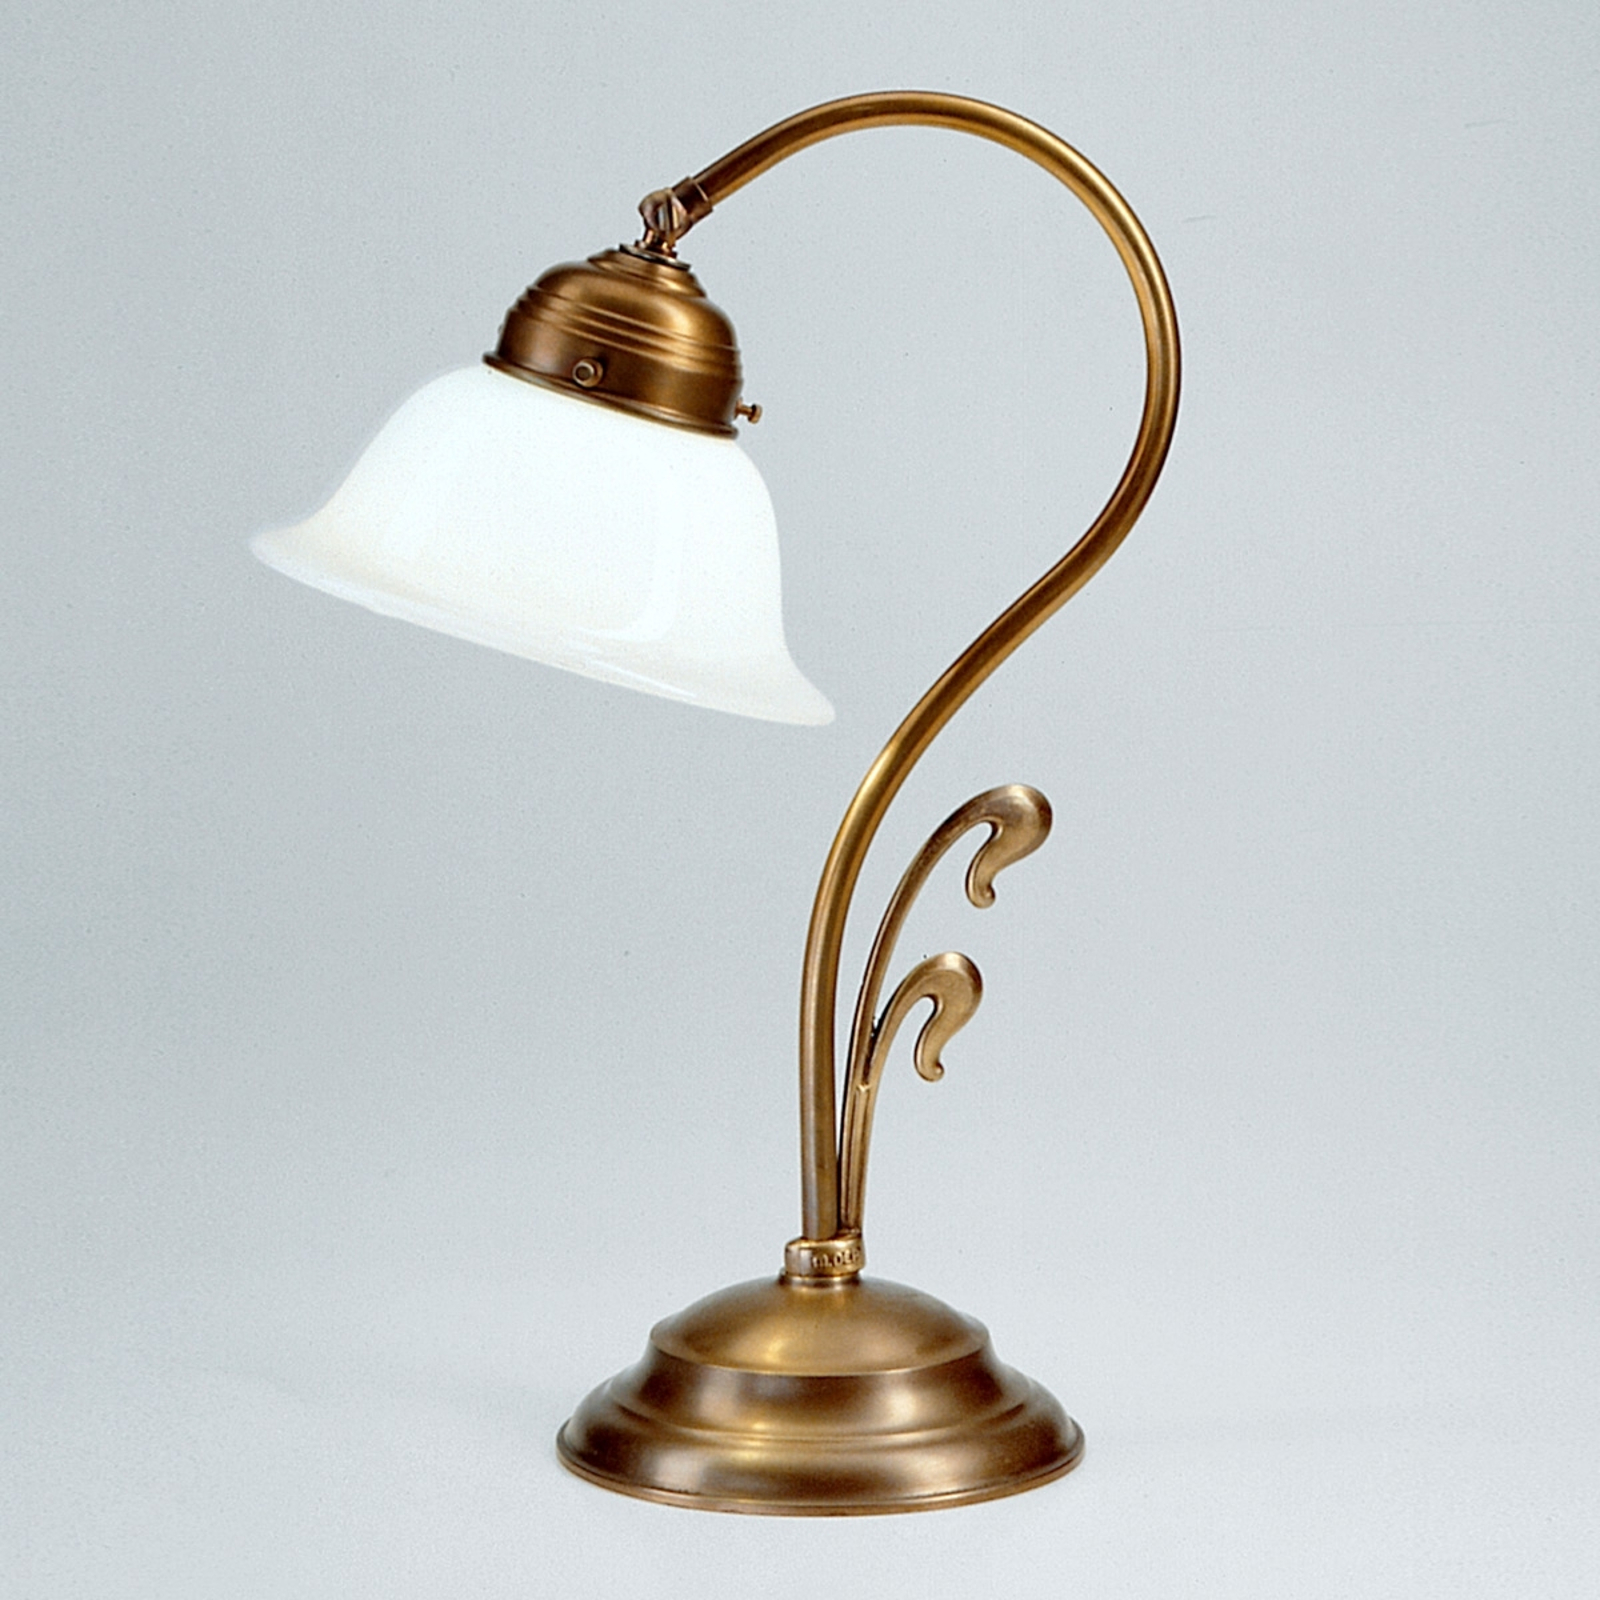 Hannelore curved table lamp_1542053_1